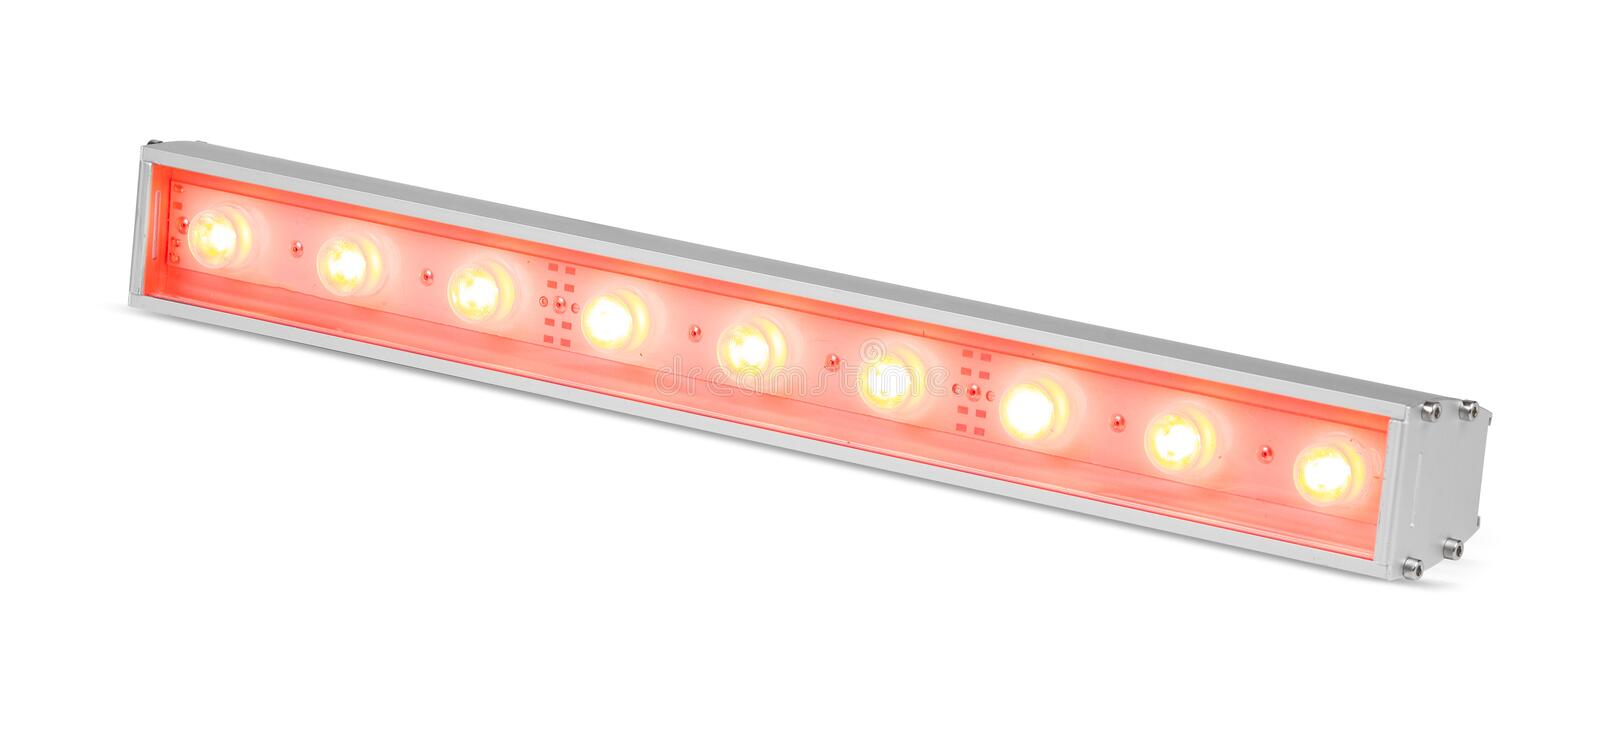 Red LED flood light outdoor projector lamp isolated on white background royalty free stock image